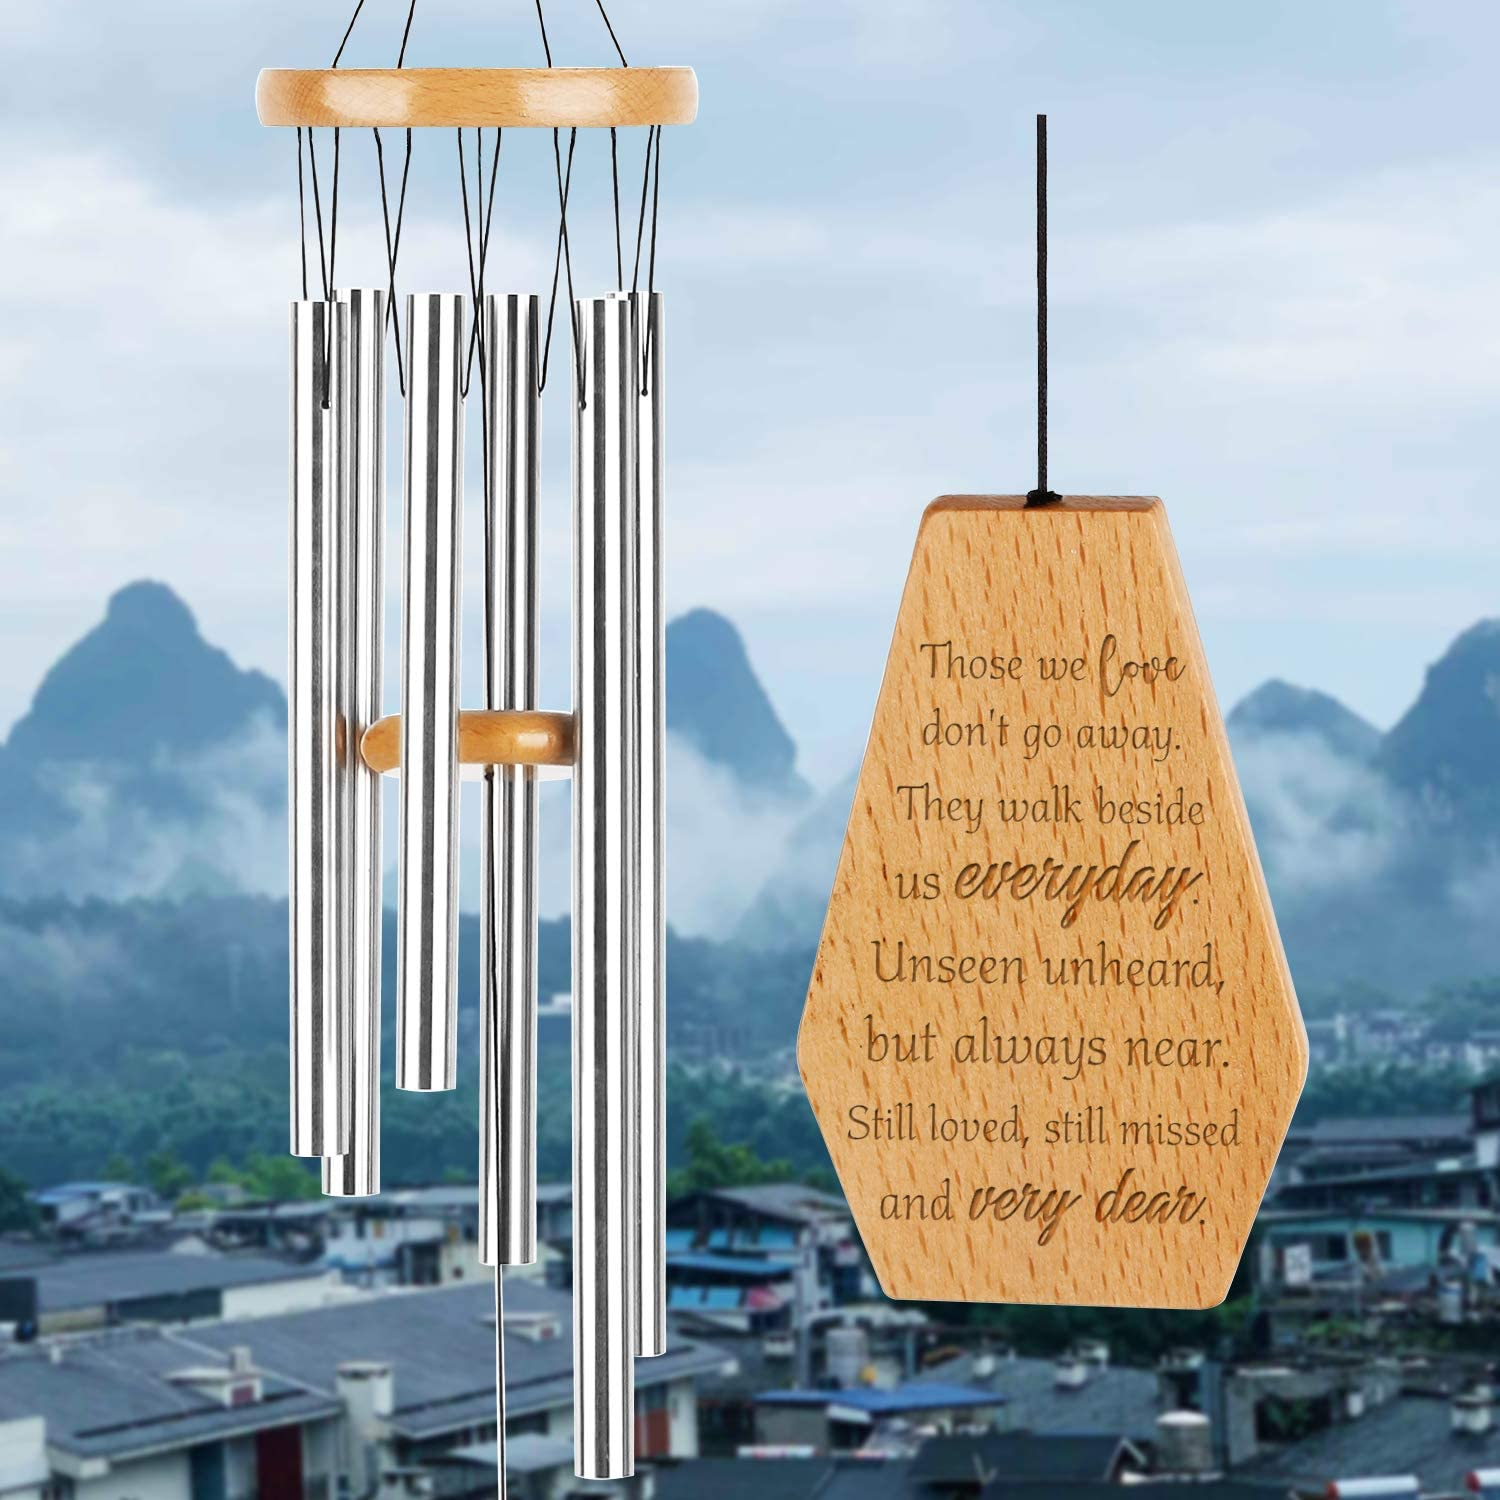 Wind Chimes Outdoor Deep Tone, 32.5 Inch Memorial Wind Chime, Wind Chimes with 6 Tuned Silver Tubes, In Memory of, Elegant Chime for Garden, Patio, Balcony and Home, Wind Chimes for Mom, Father,